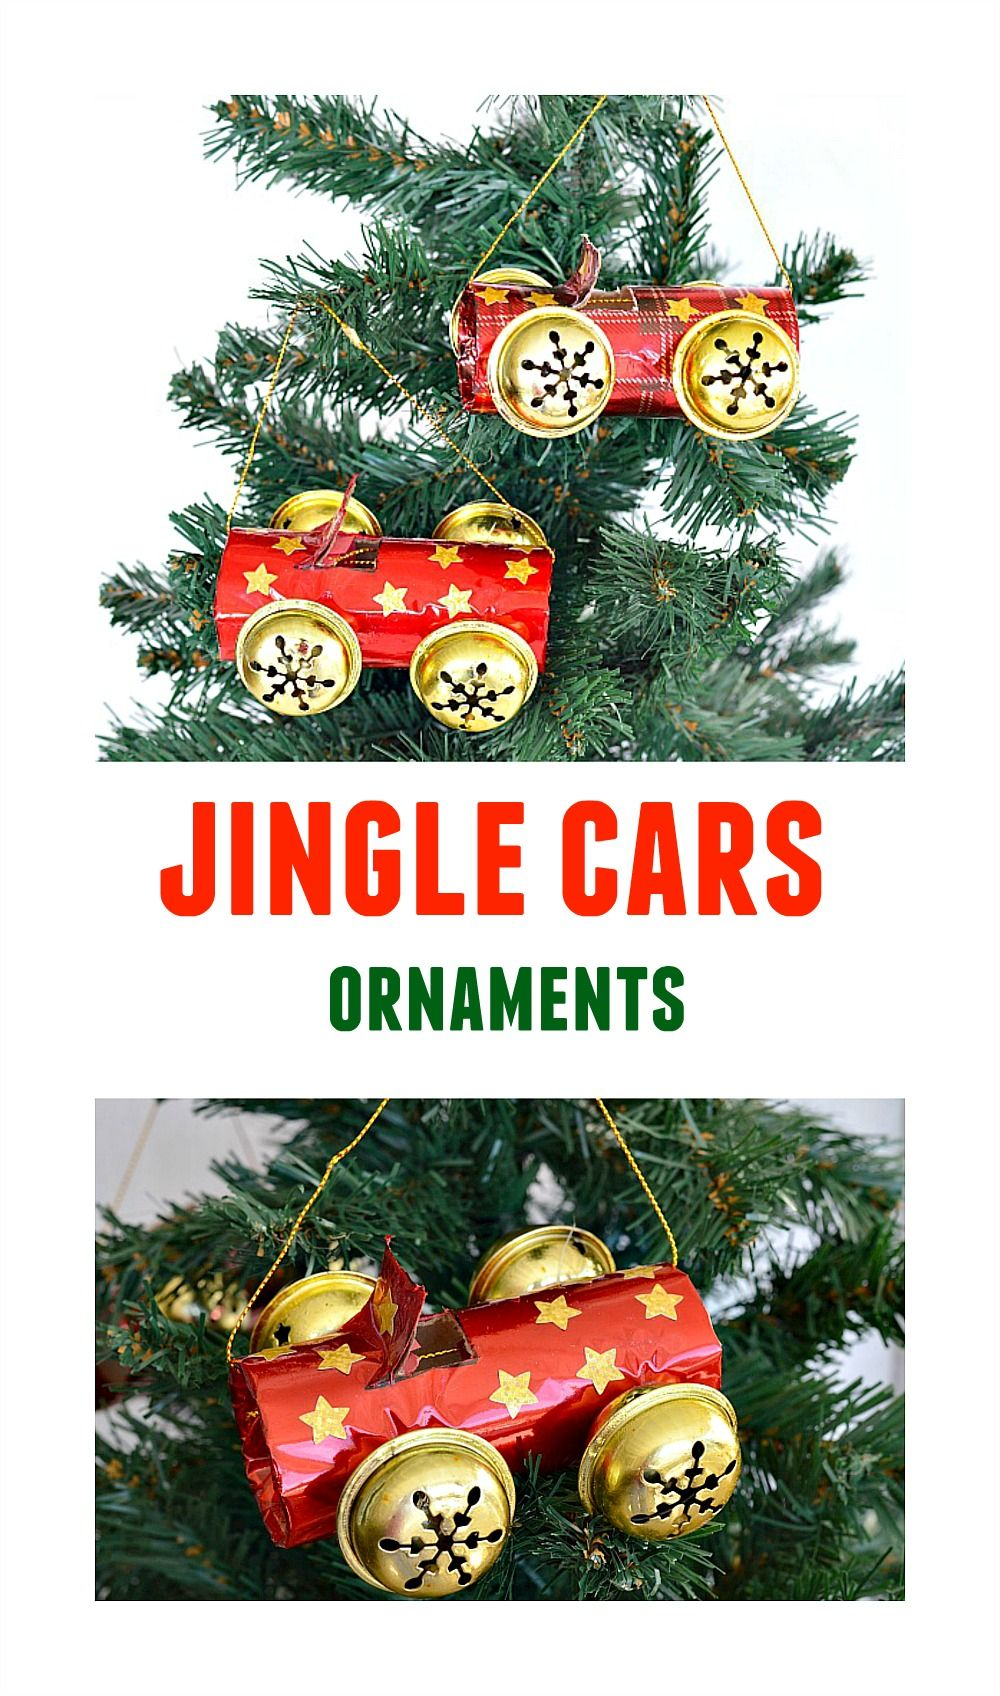 recycled ornament crafts cute jingle cars homemade ornaments kids can make for christmas